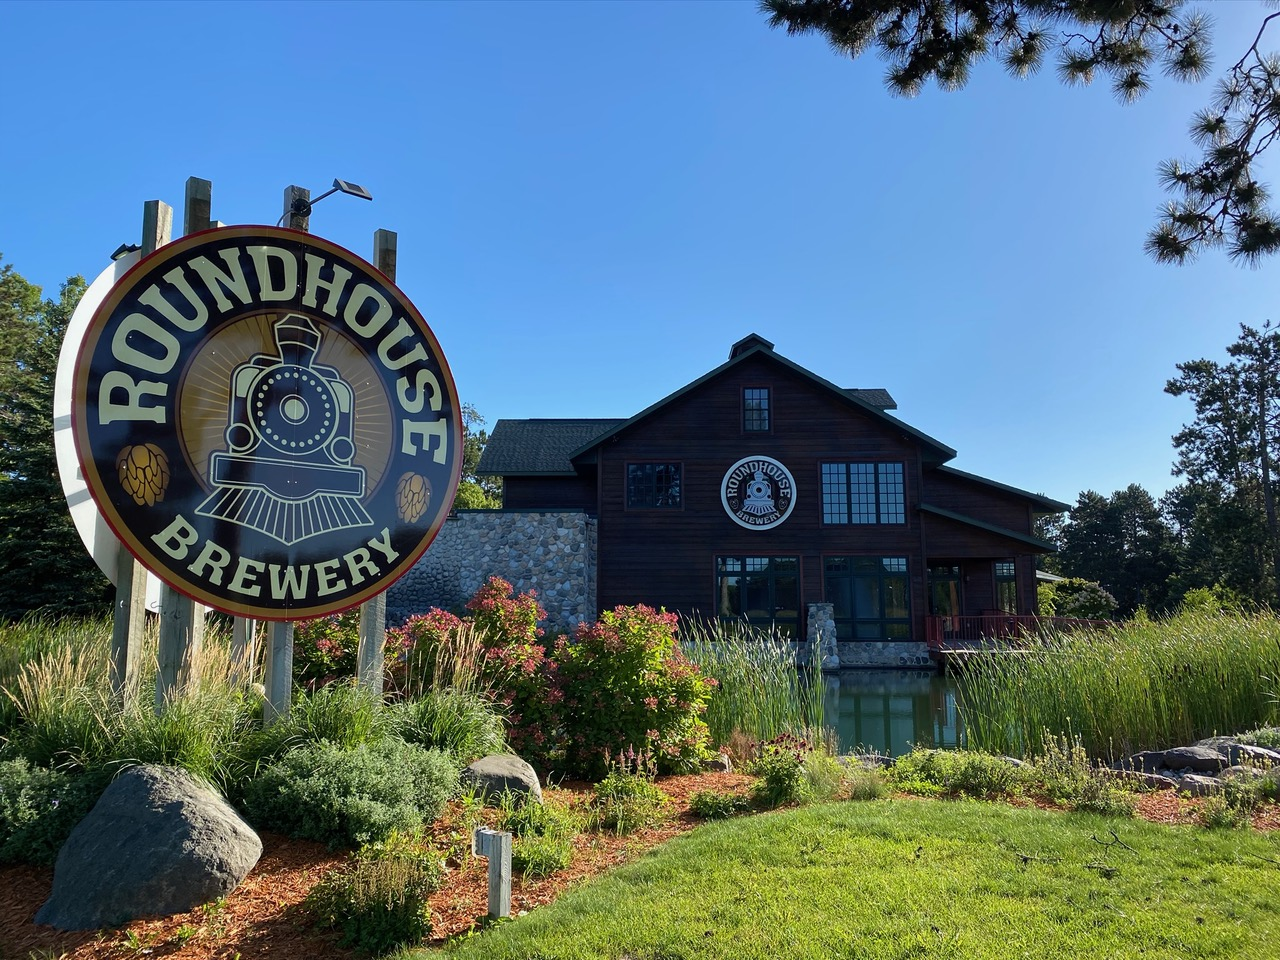 Now Open: Roundhouse Brewery's new Nisswa location